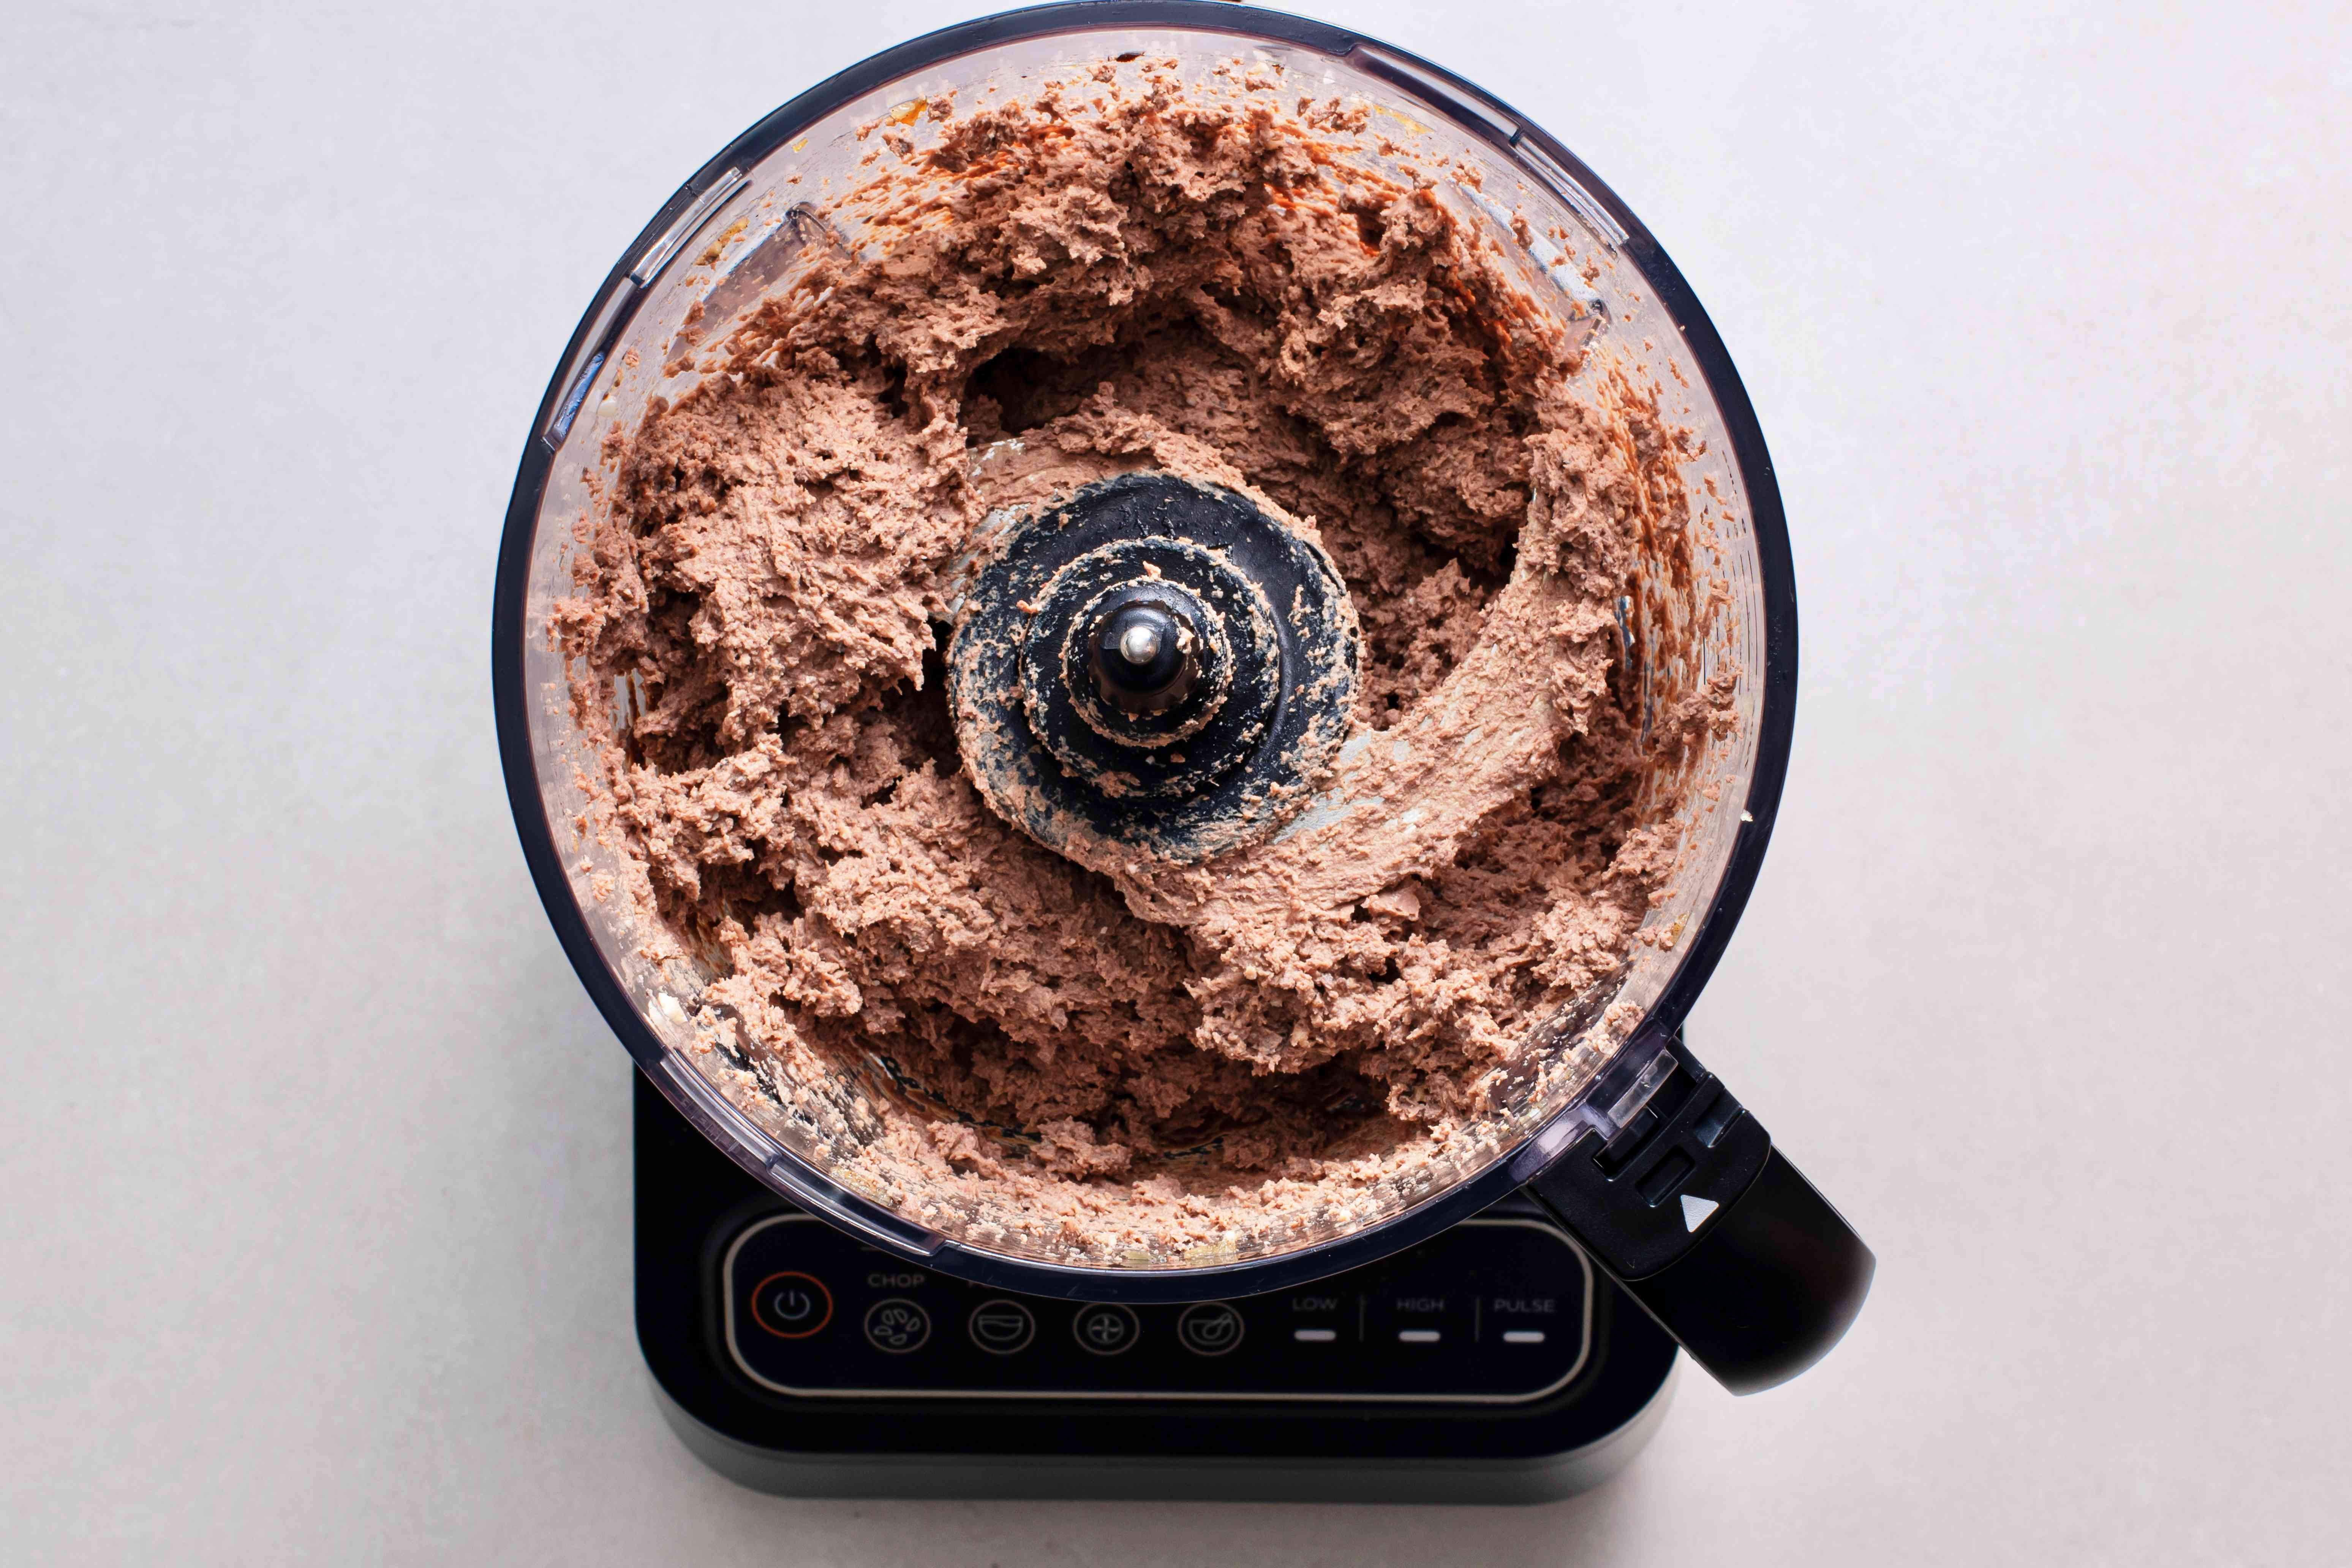 hard-boiled eggs, cooked chicken livers, black pepper, and nutmeg with onions in a food processor